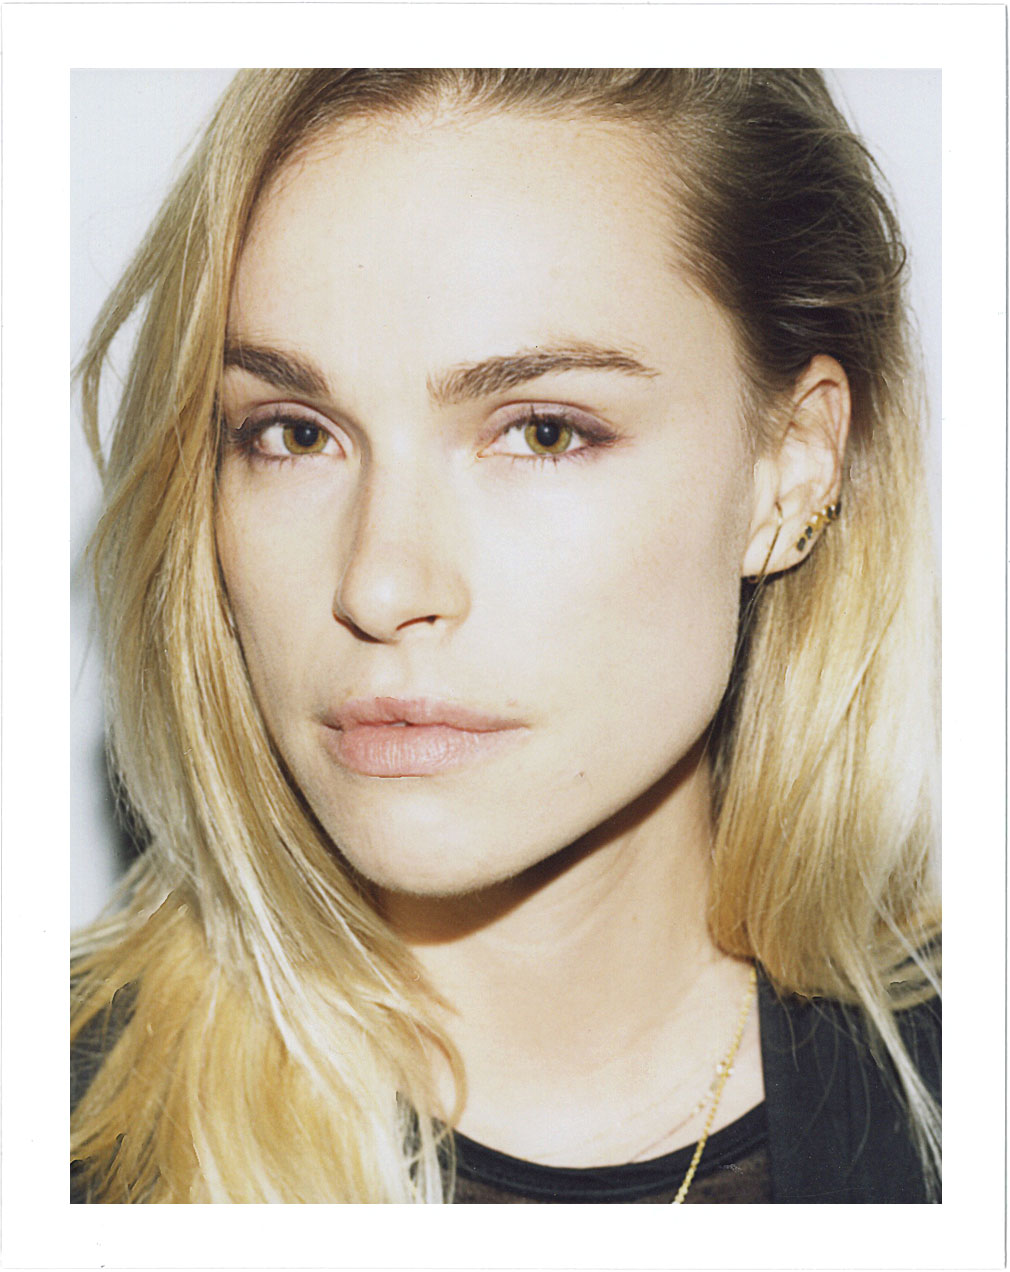 Polaroid Portrait of Artist Influencer Blanda for Nice People Only by Jane Smith Creative Agency